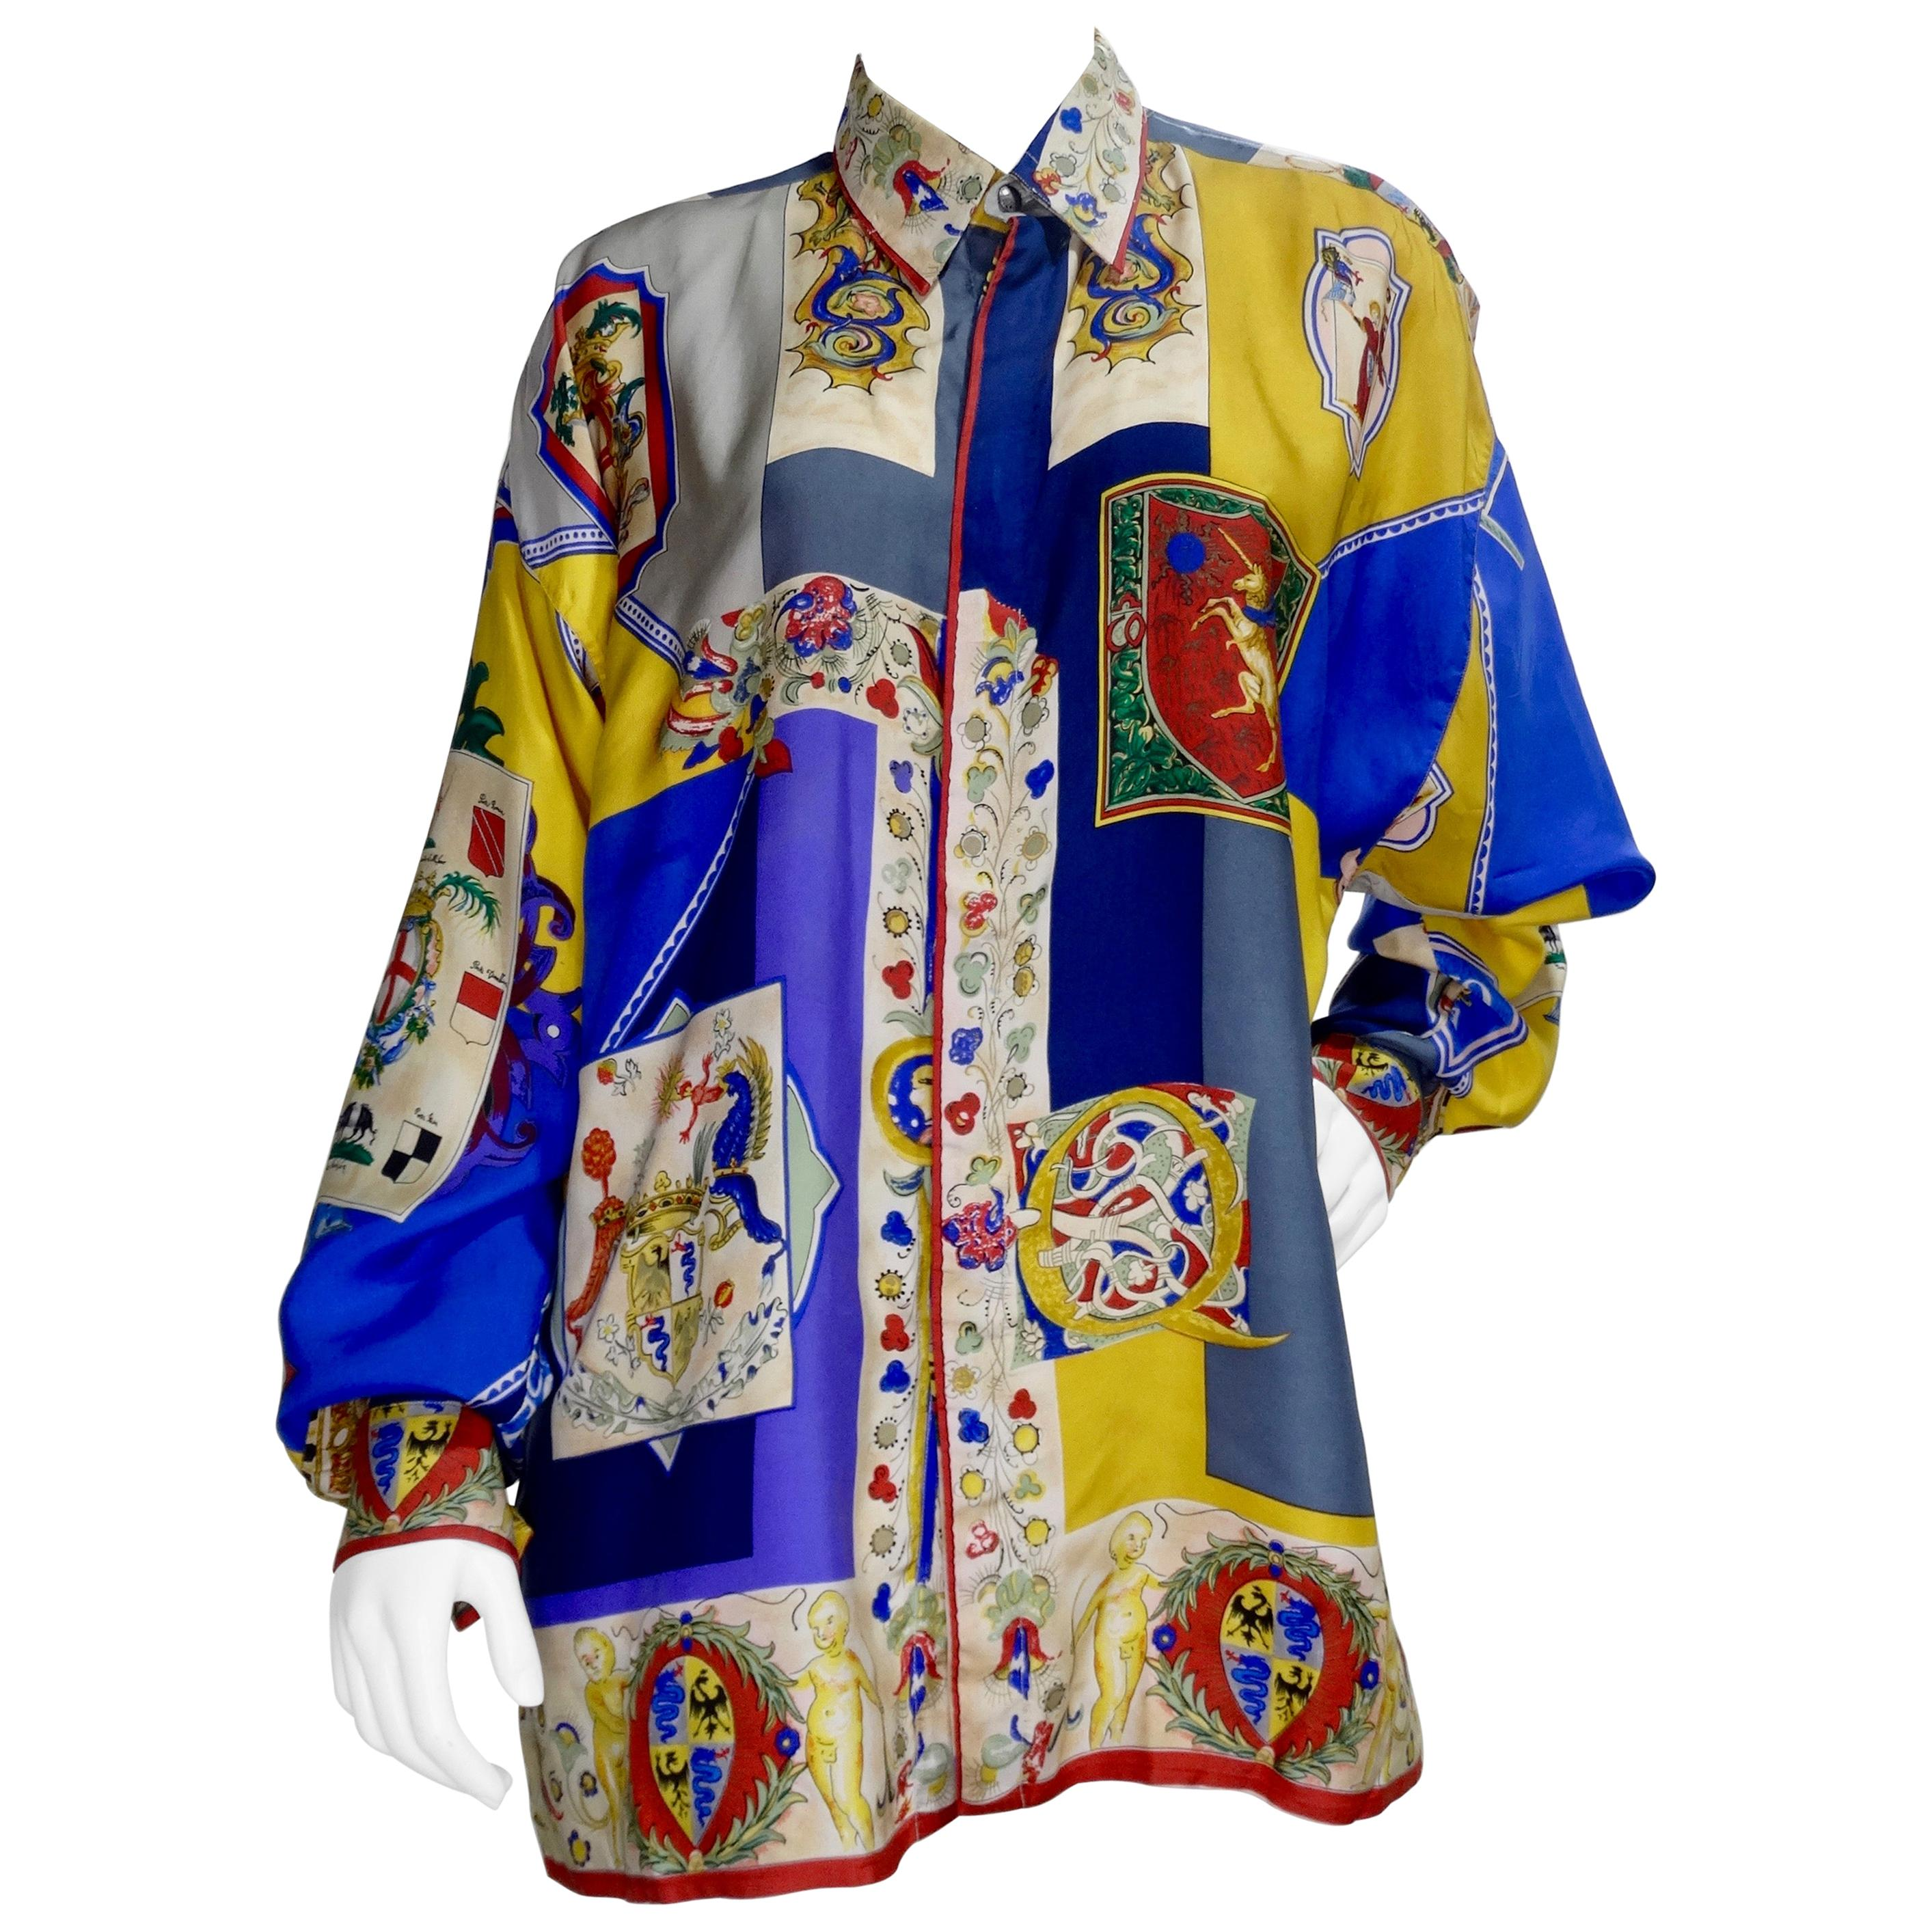 Gianni Versace 1990s Coat of Arms Silk Shirt